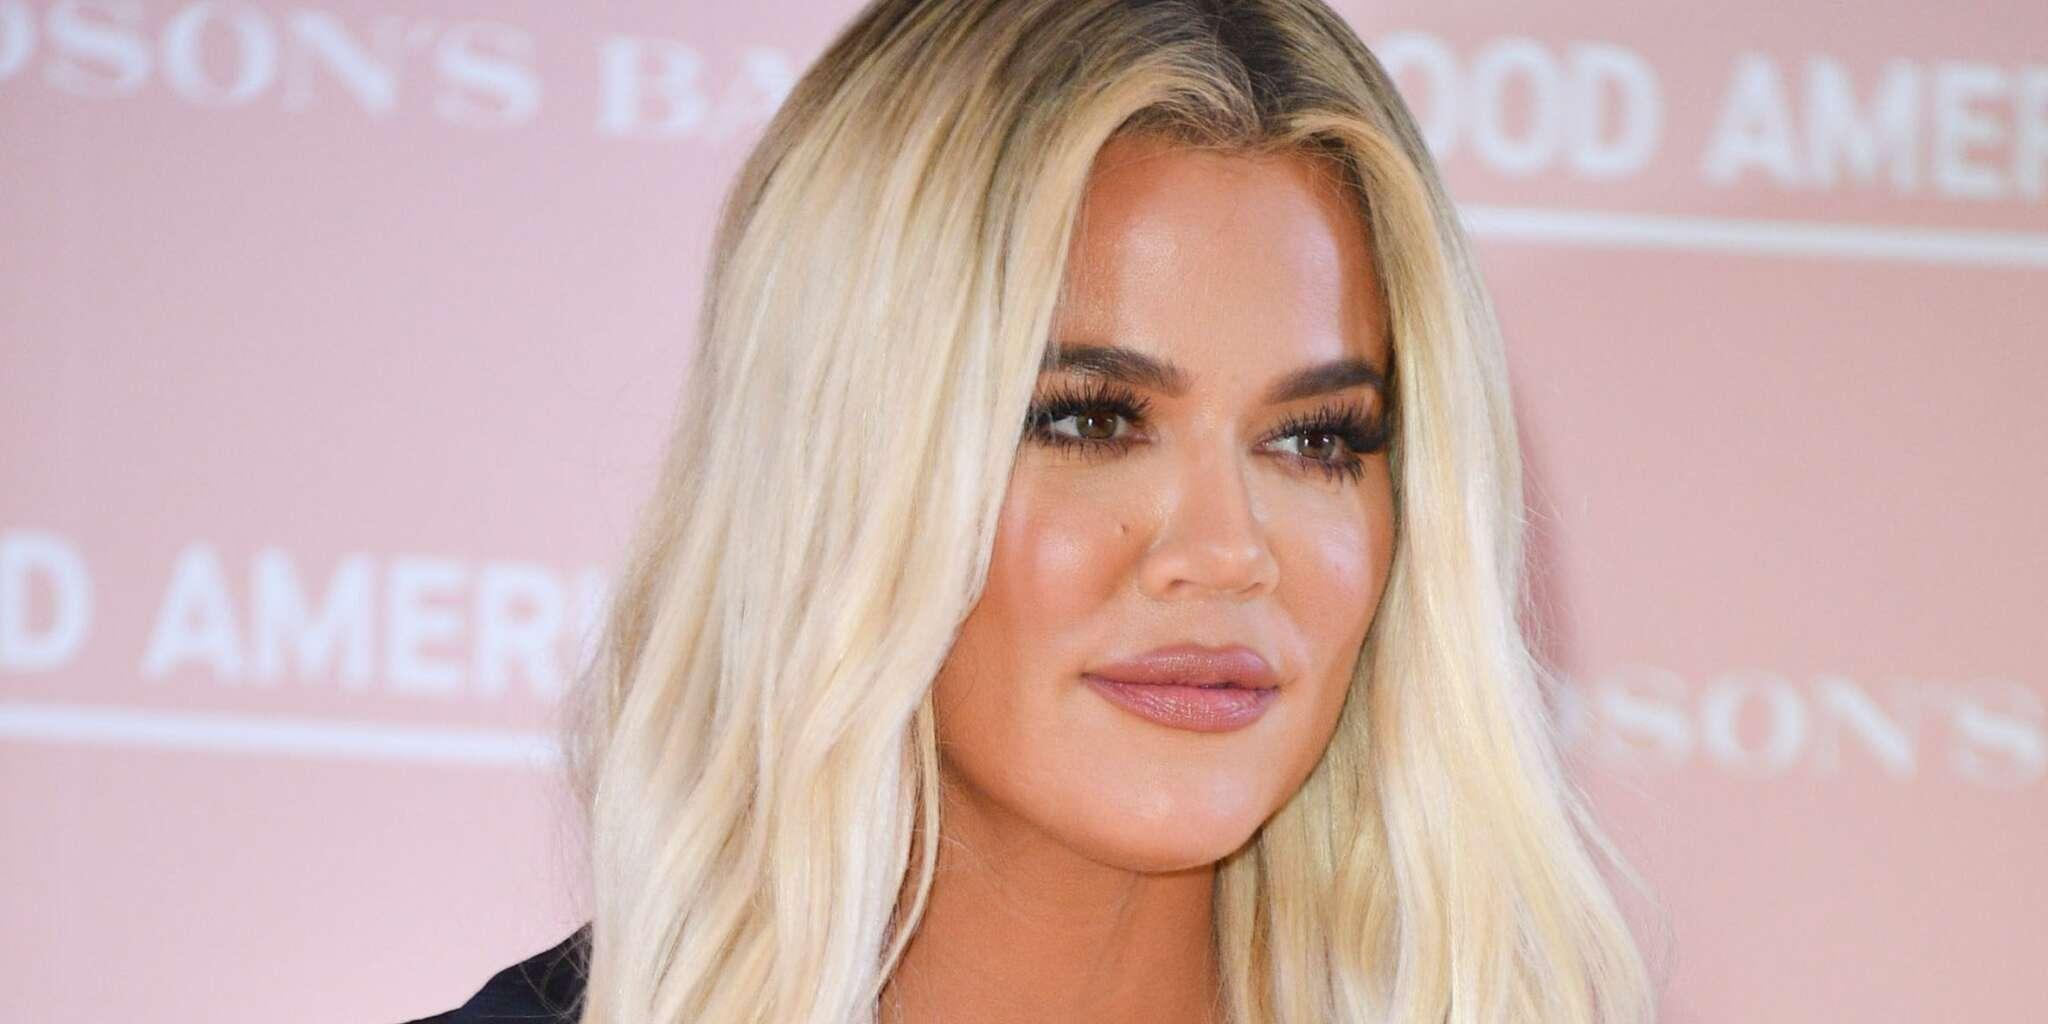 KUWTK: Khloe Kardashian Opens Up About Her Unsuccessful IVF Process